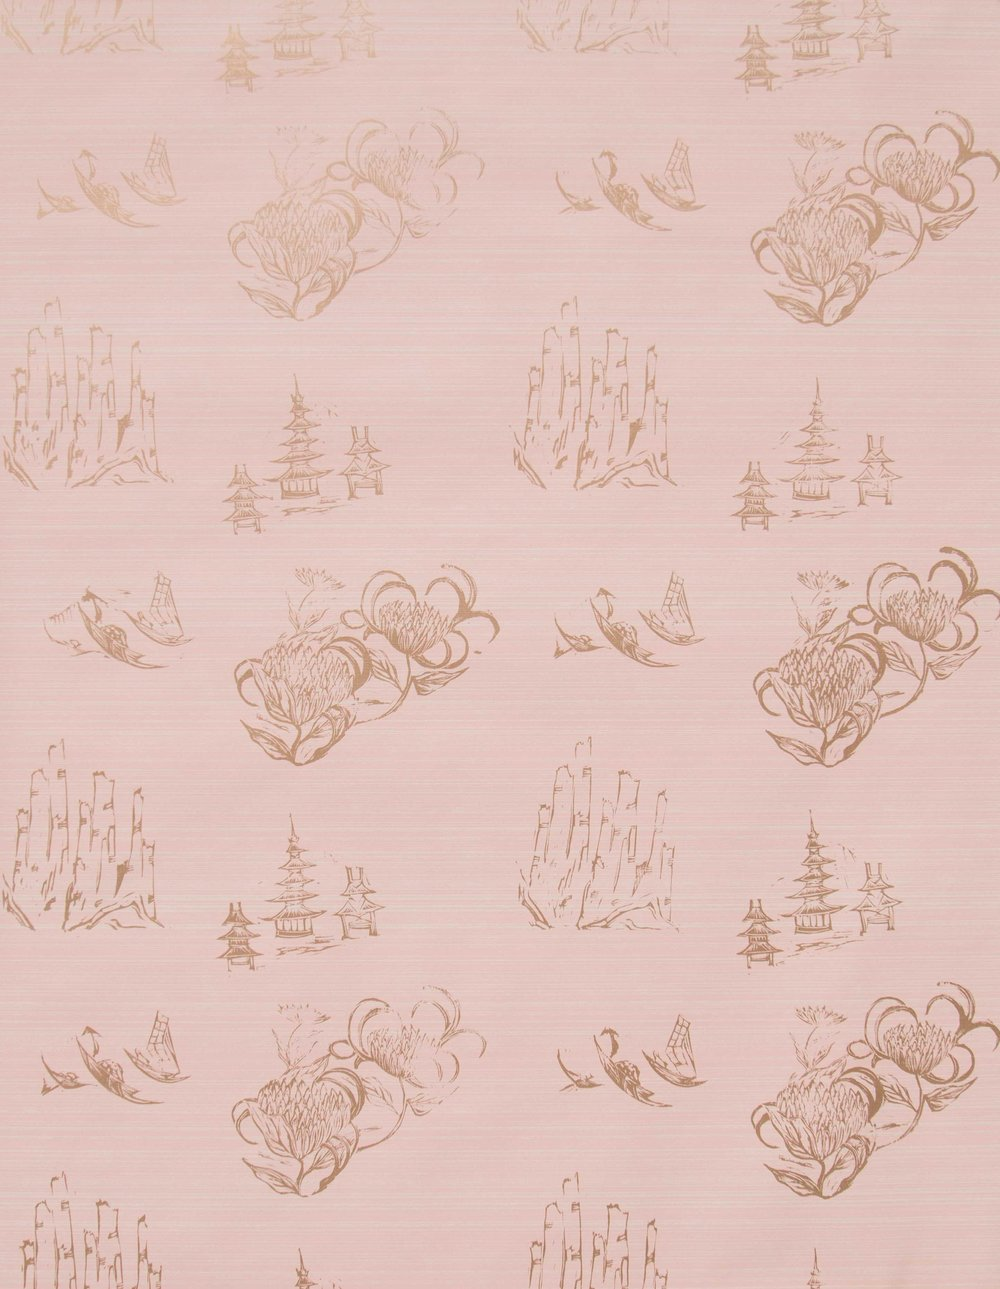 Toile in Blush, SL110-05